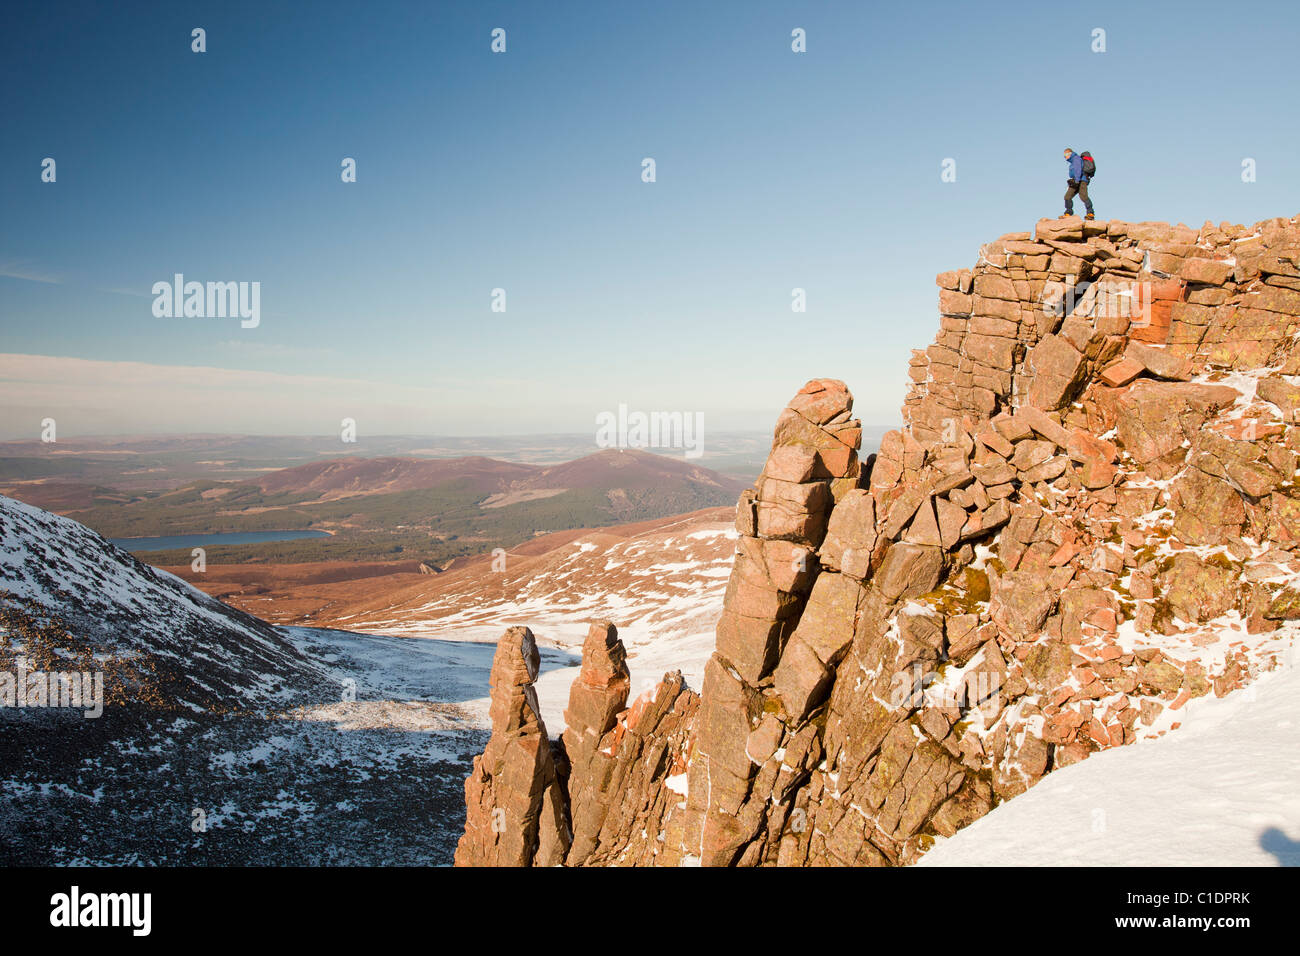 A mountaineer on a rocky granite outcrop above Coire an Lochain in the Cairngorm Mountains, Scotland, UK. - Stock Image